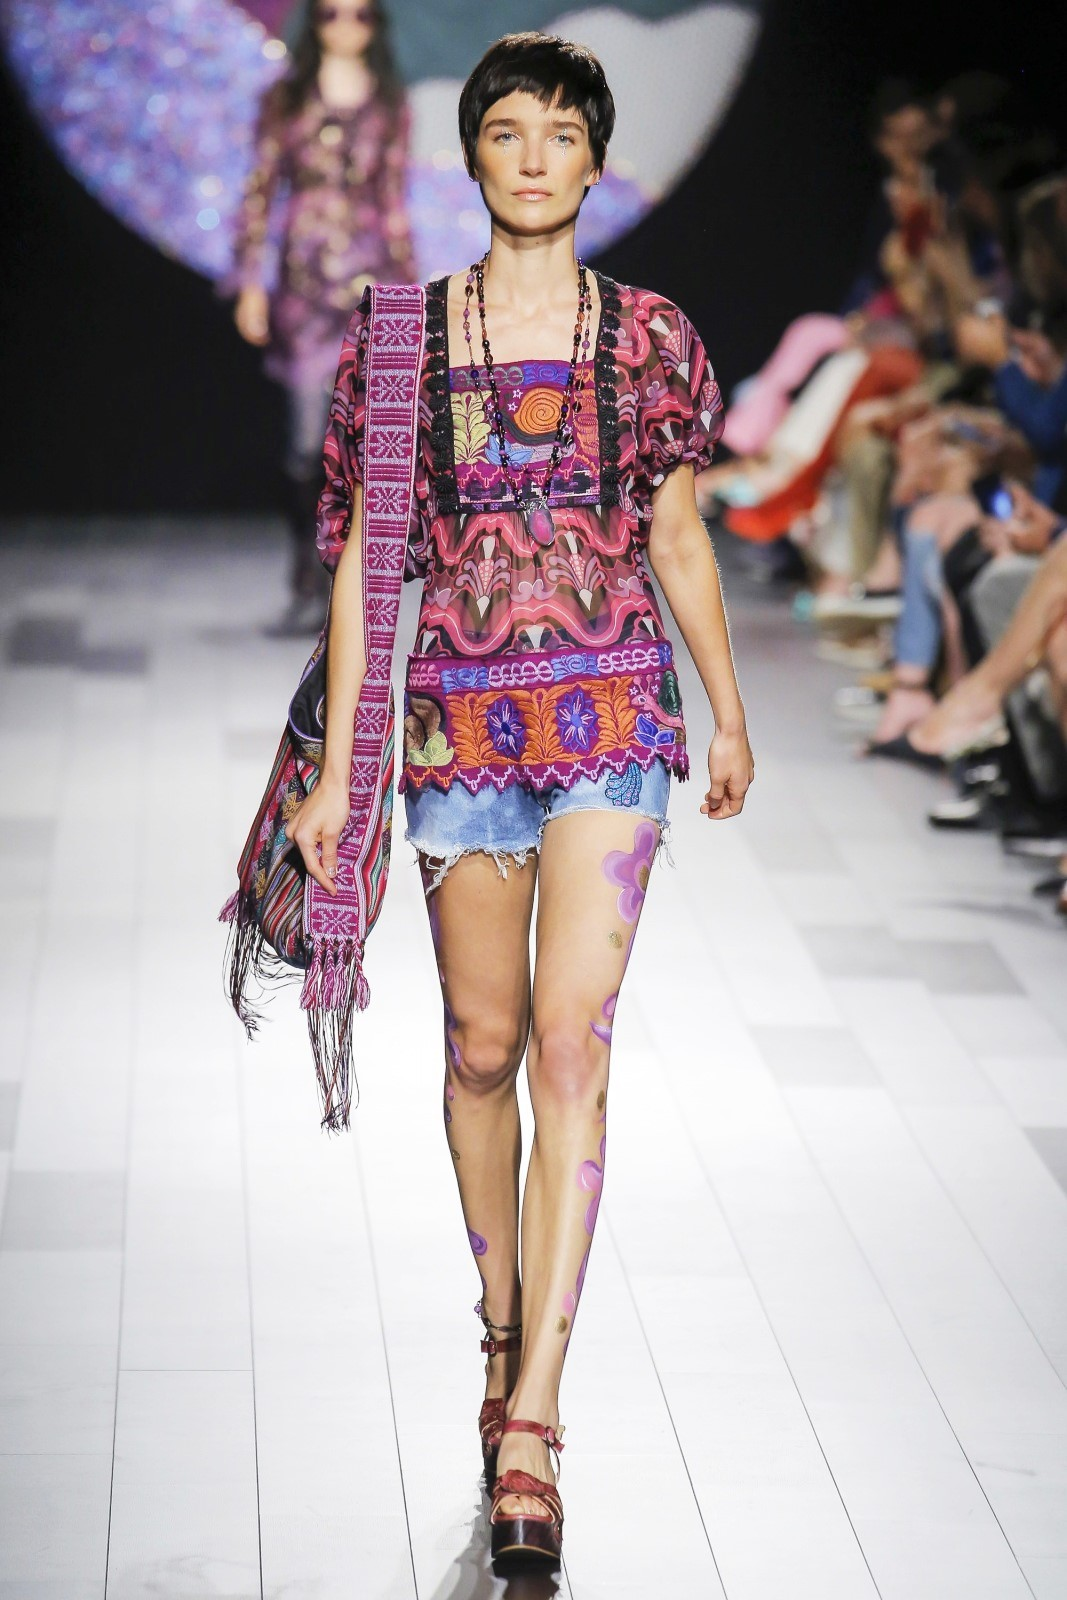 2019 year for girls- Anna sui ss